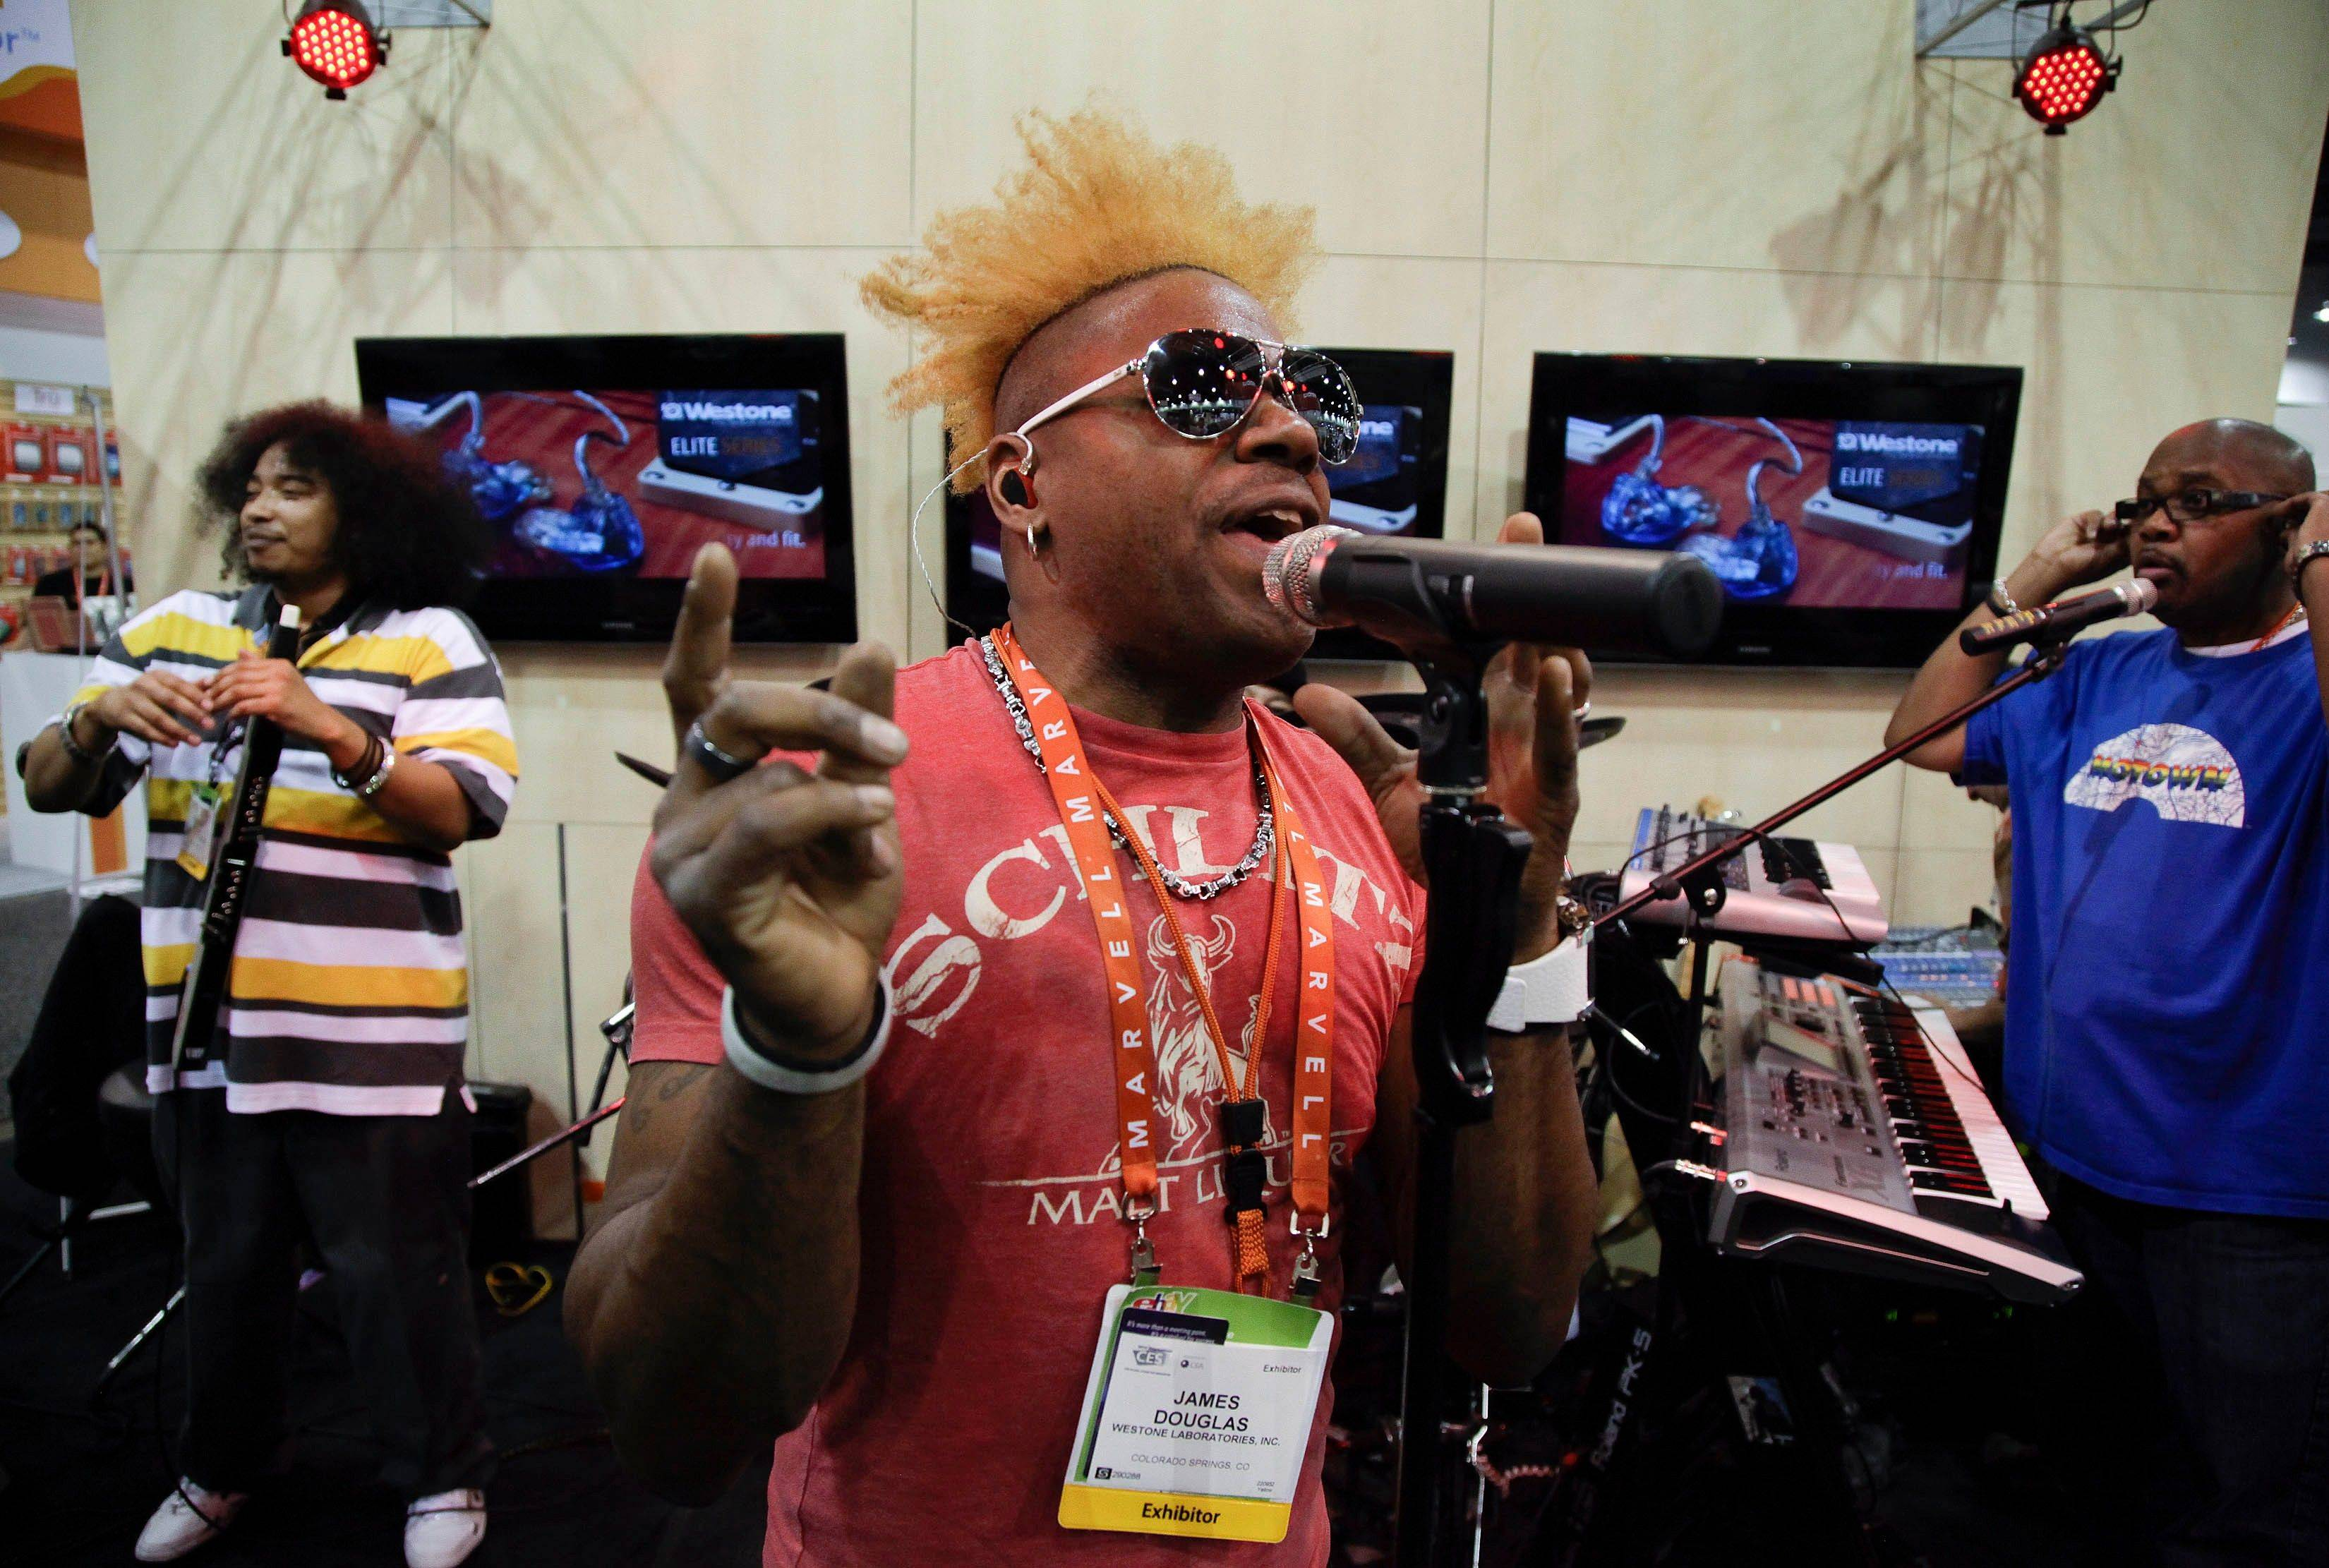 Exhibitor James Douglas sings rap song in the Westone booth to demonstrate the quality of earbuds his company manufactures at the 2012 International Consumer Electronics show.